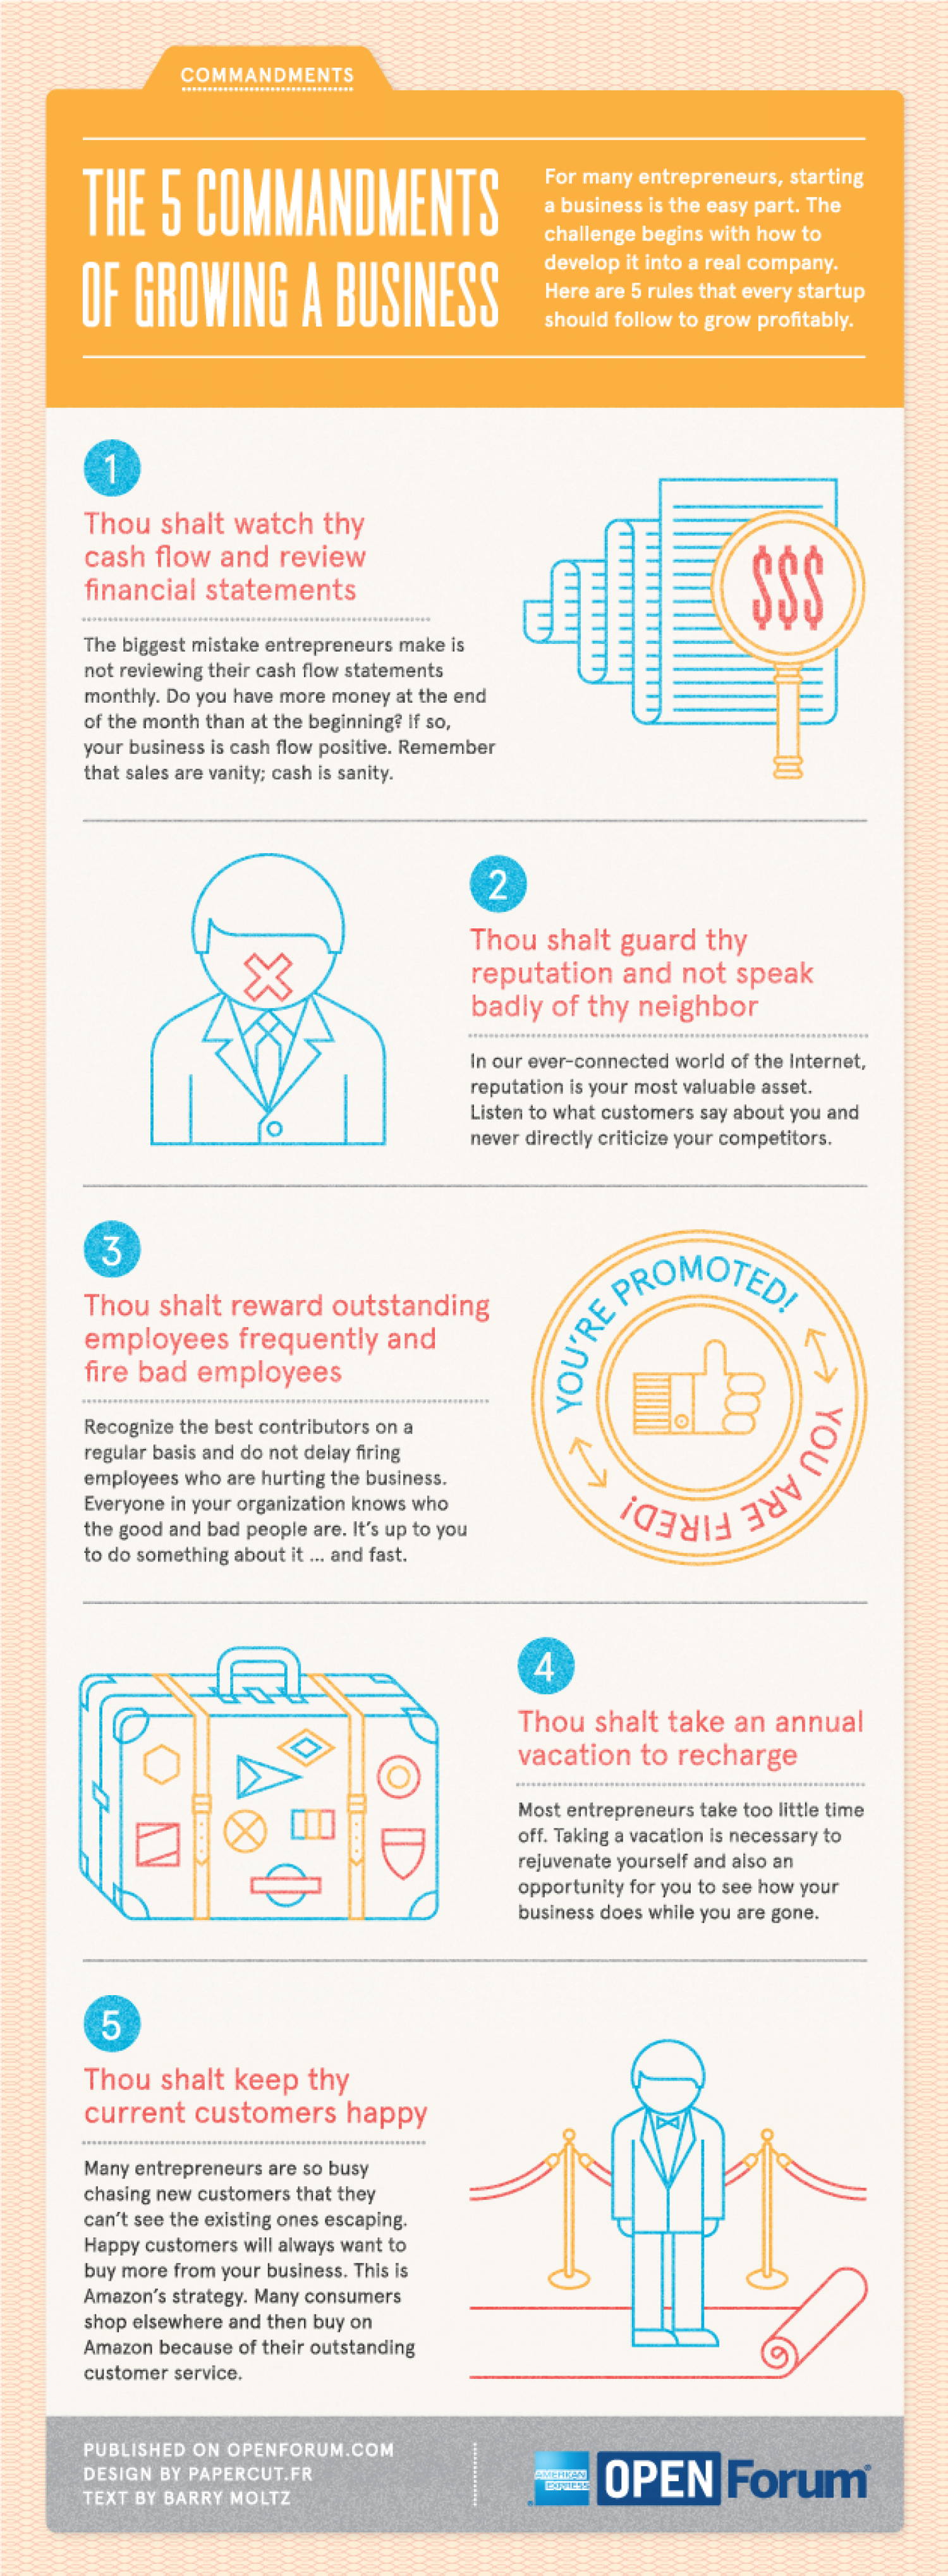 The 5 Commandments of Growing a Business Infographic